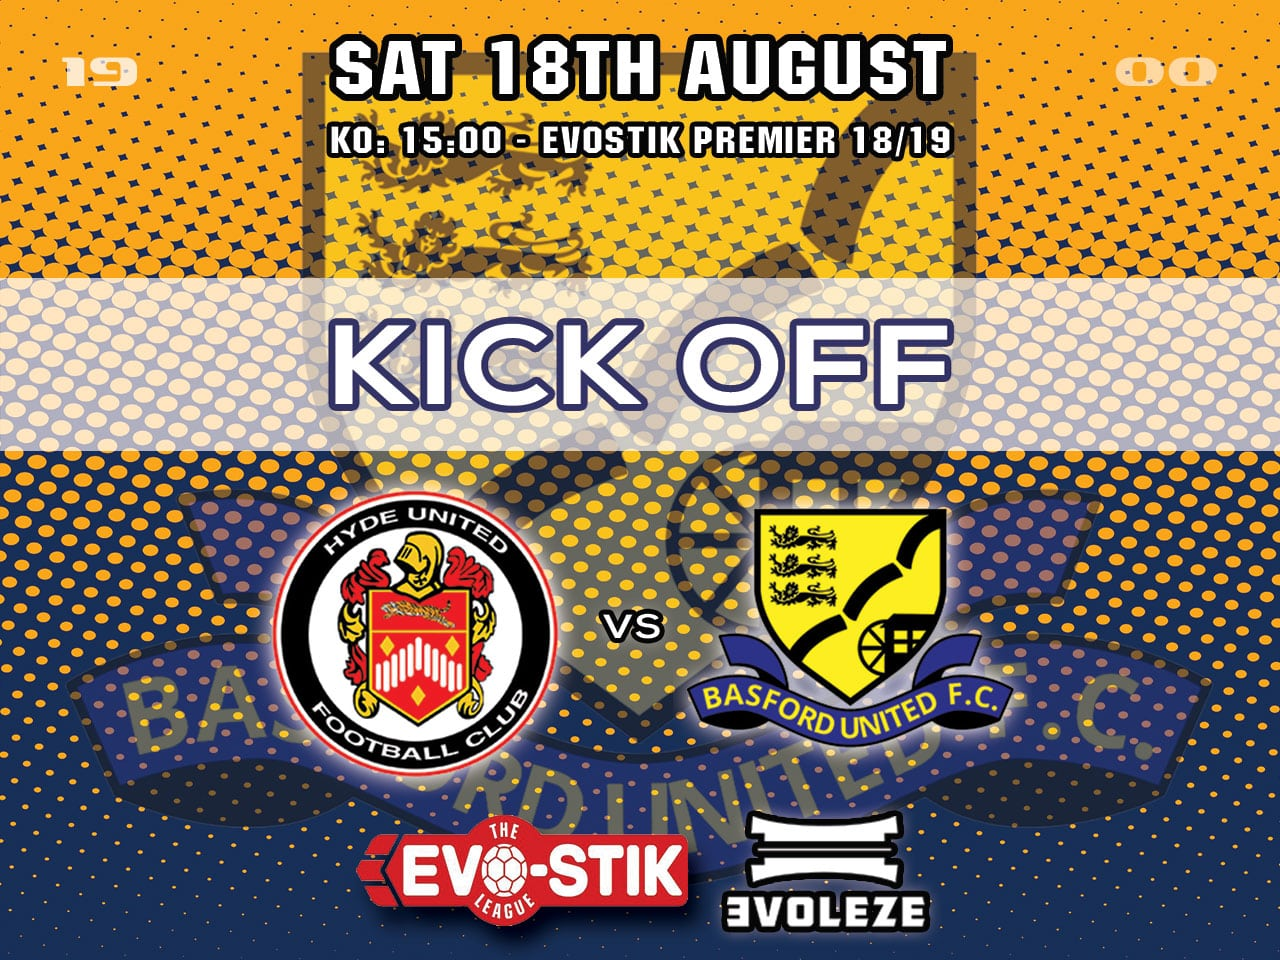 kick off Basford United FC